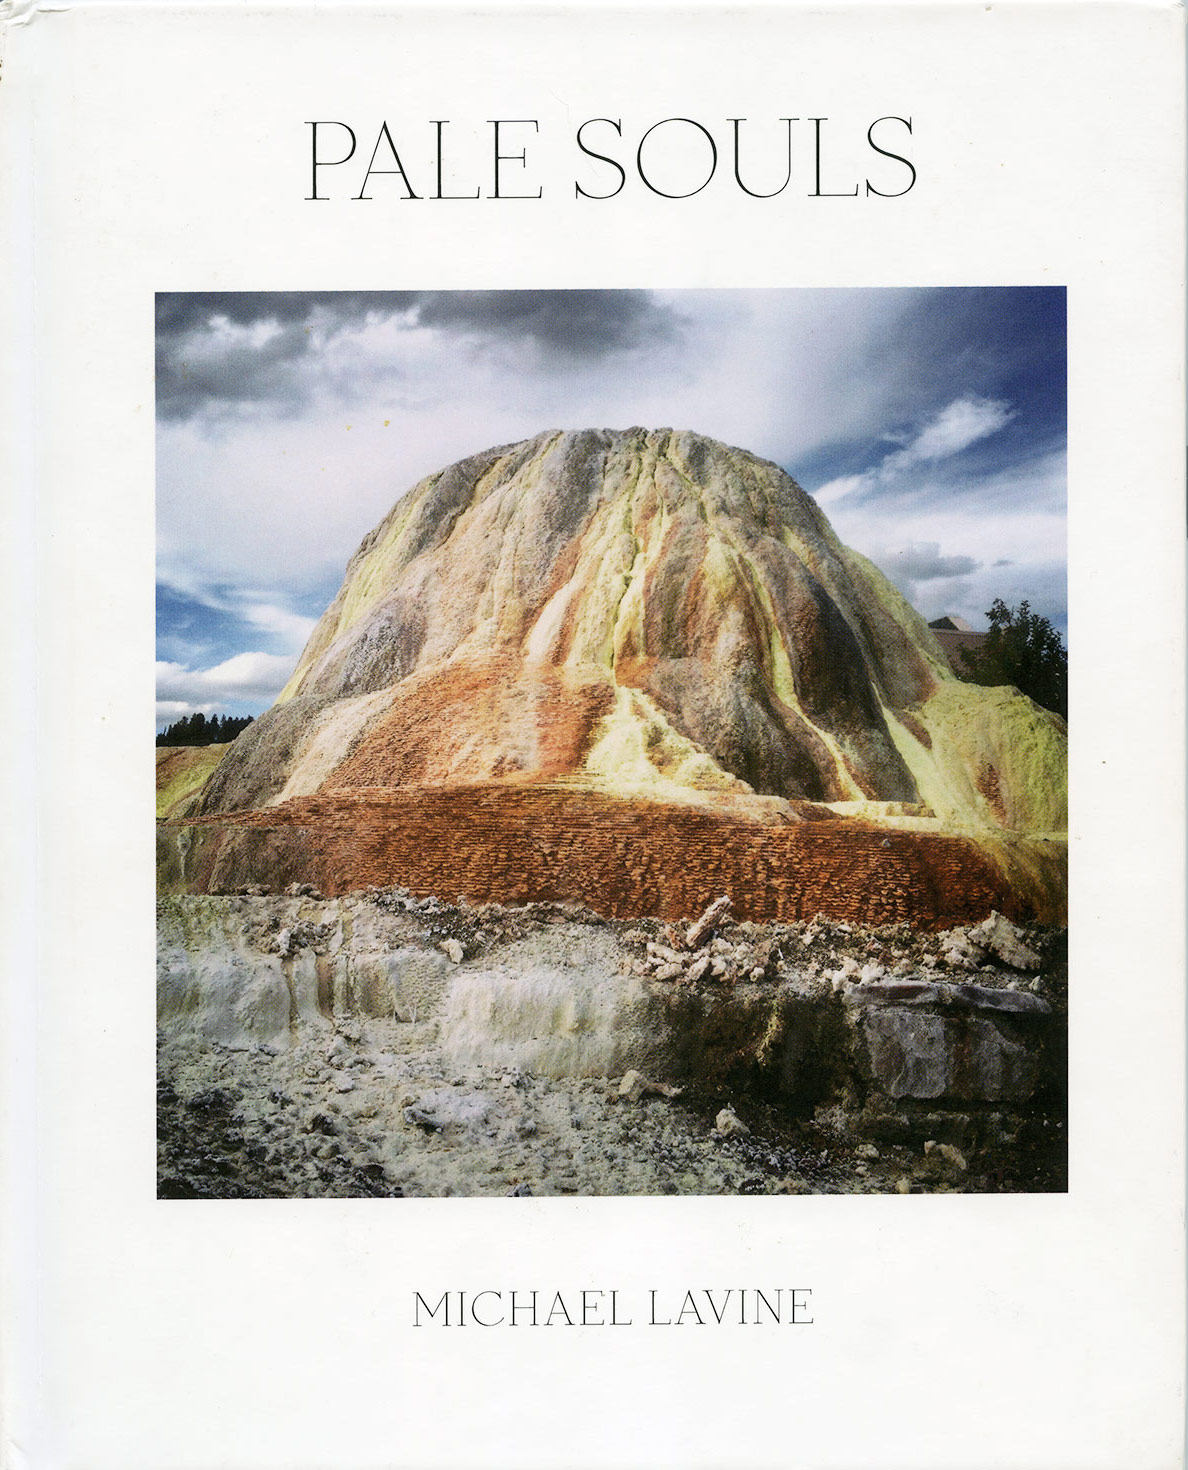 PALE SOULS COVER